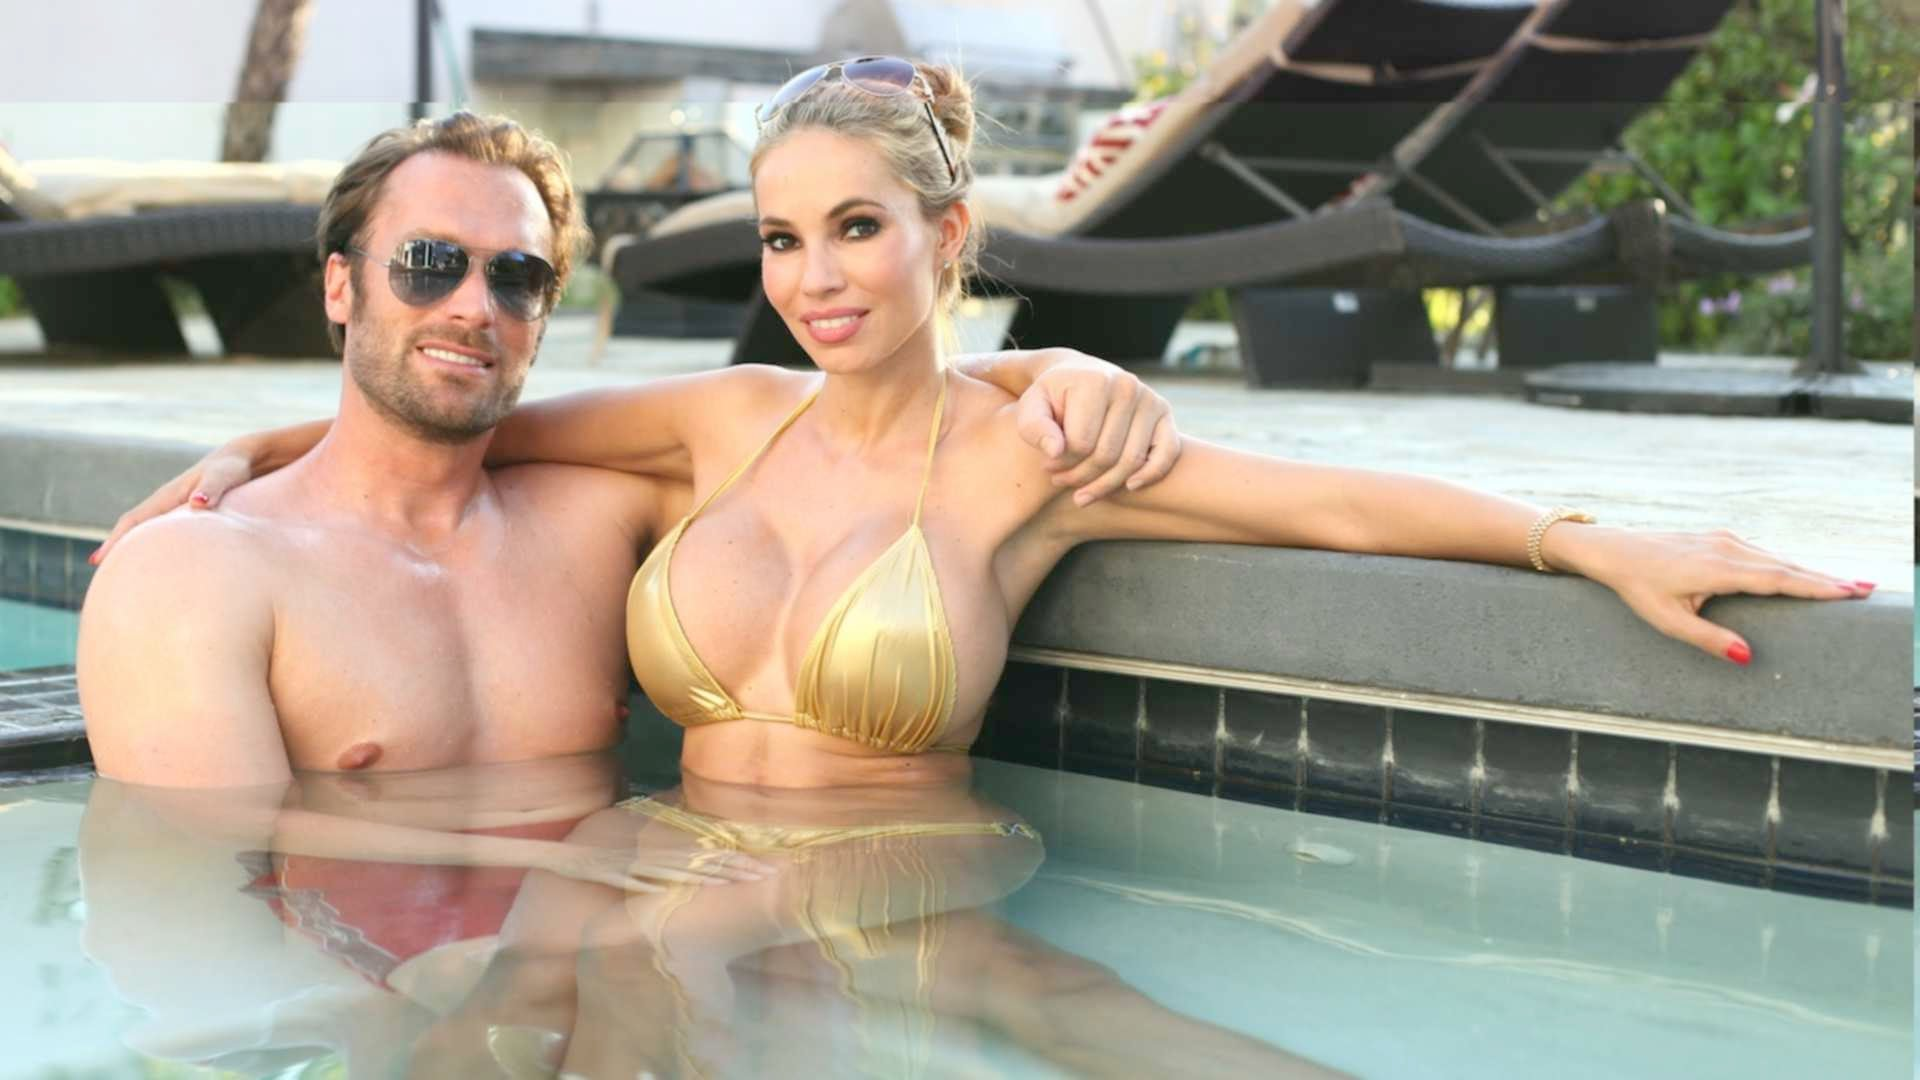 Bling Germany Couple Bastian Maria Yotta Instagram decadent Playboy mansion lifestyle pool parties super cars shopping Beverly Hills lifestyle Multi-millionaire flashy Ferrari large breasts